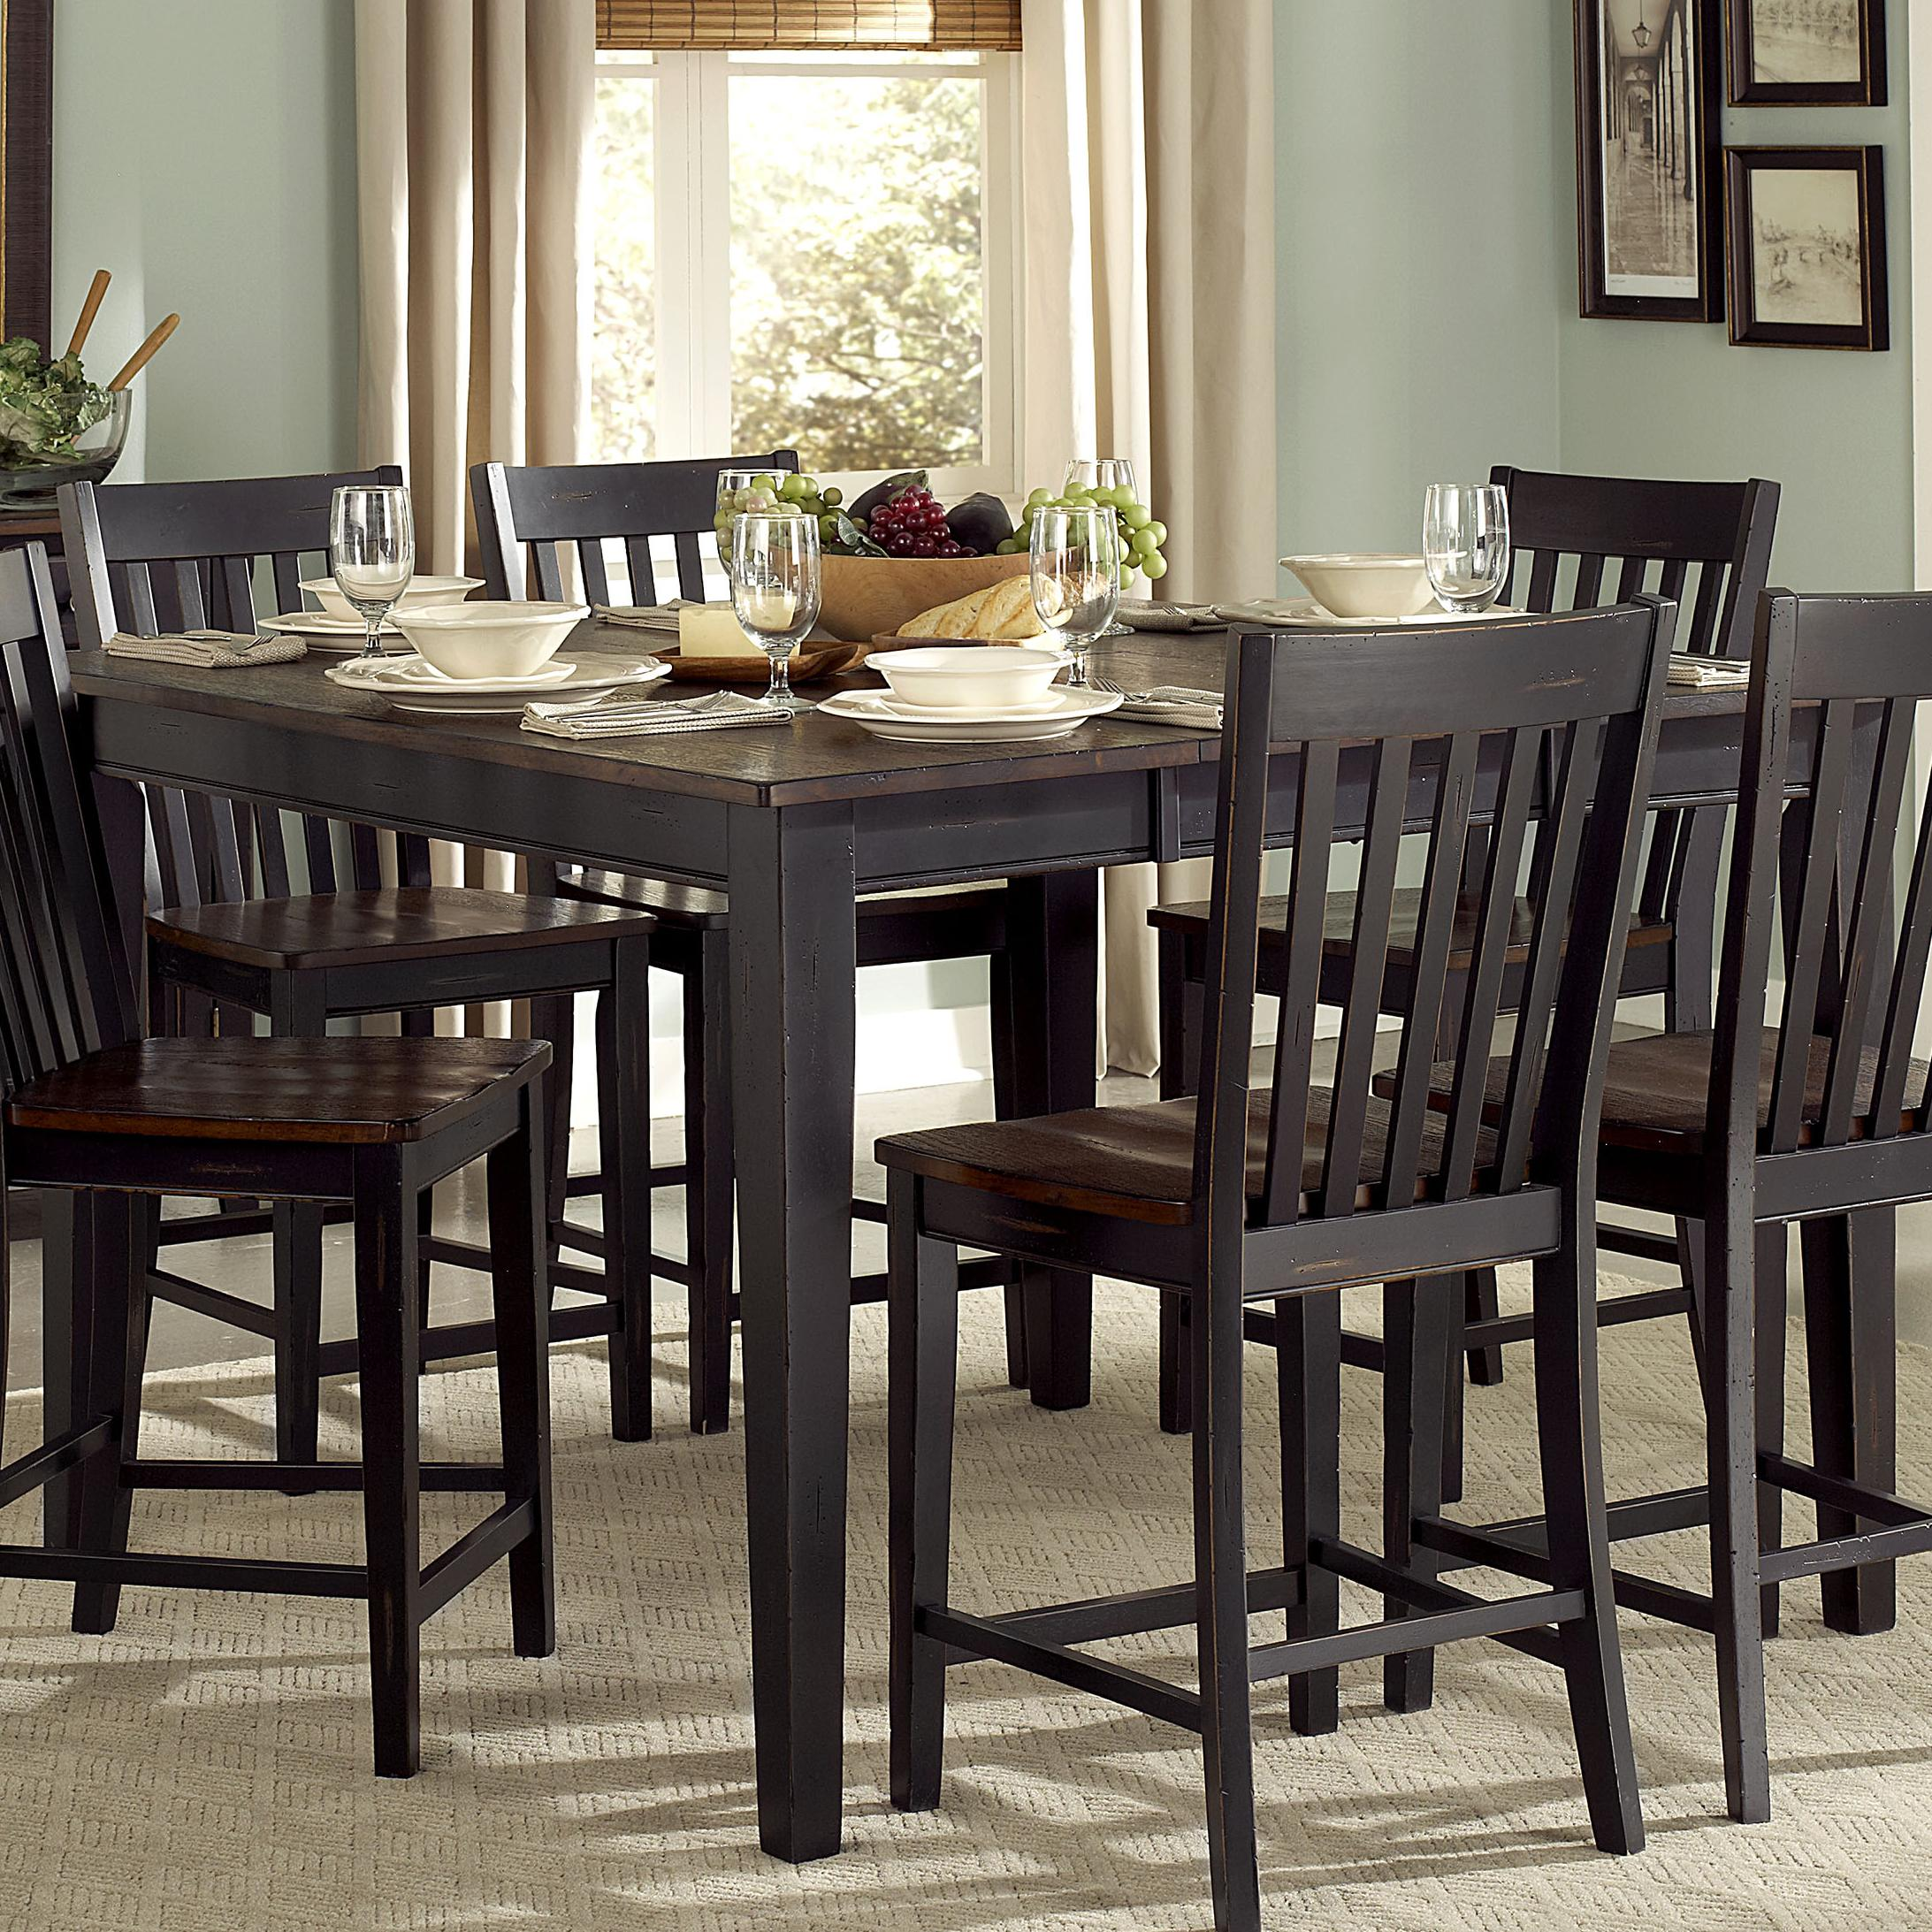 Homelegance Three Falls Counter Height Table - Item Number: 5023-36